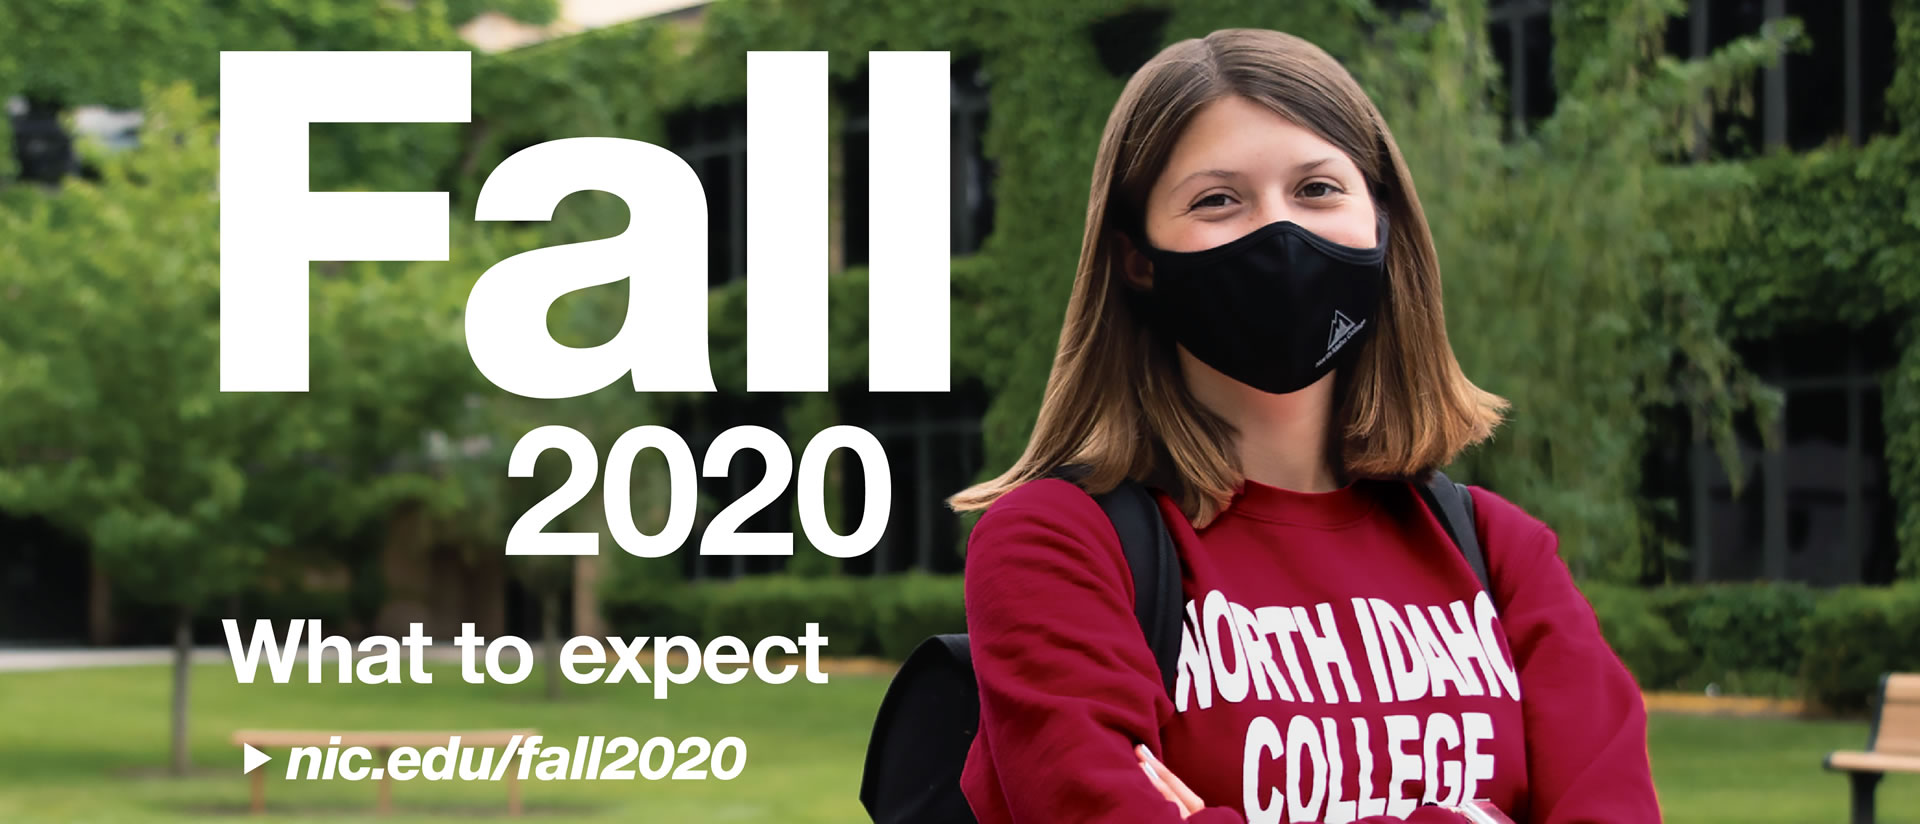 female student wearing a a mask - Fall 2020 - What to expect